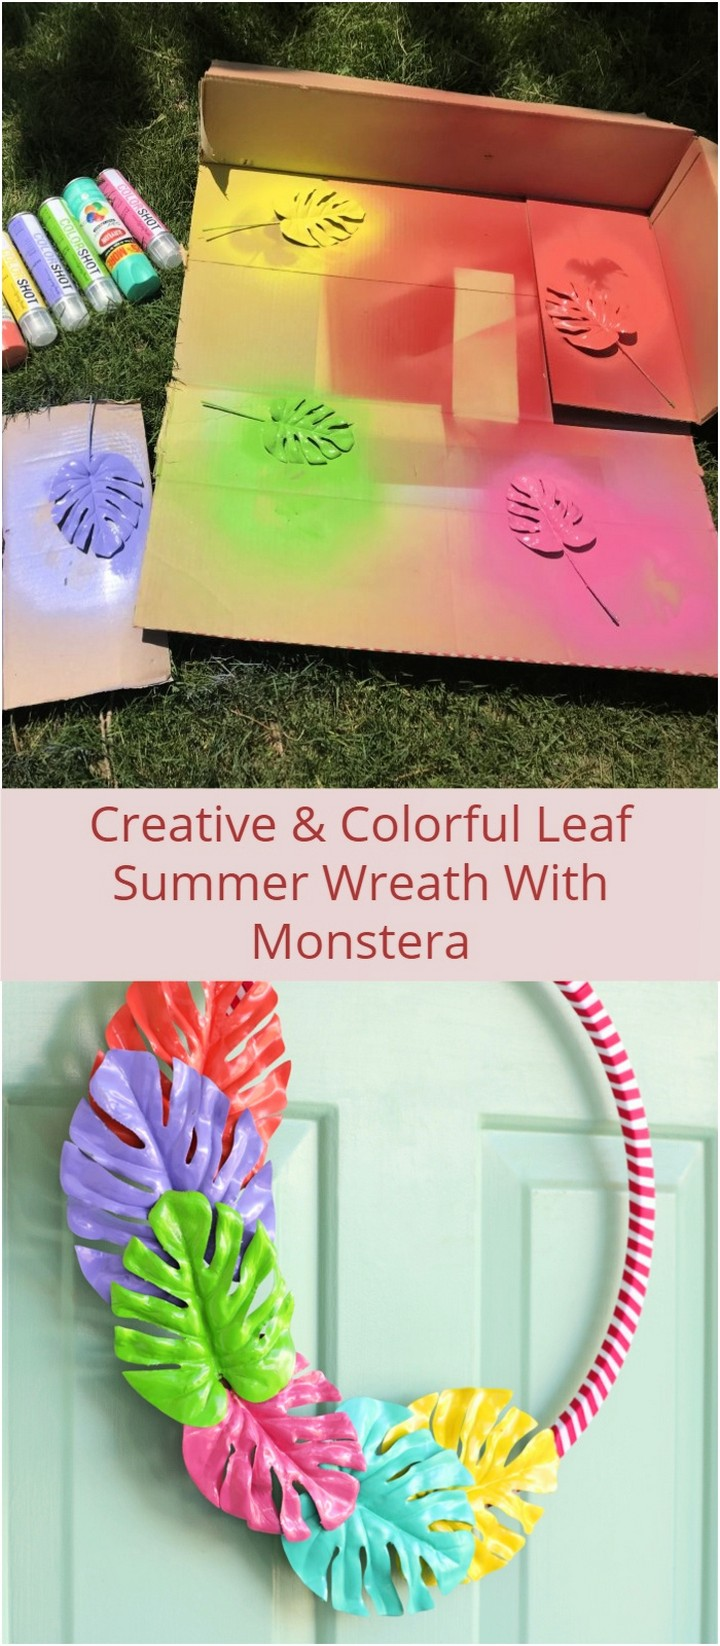 Creative Colorful Leaf Summer Wreath With Monstera